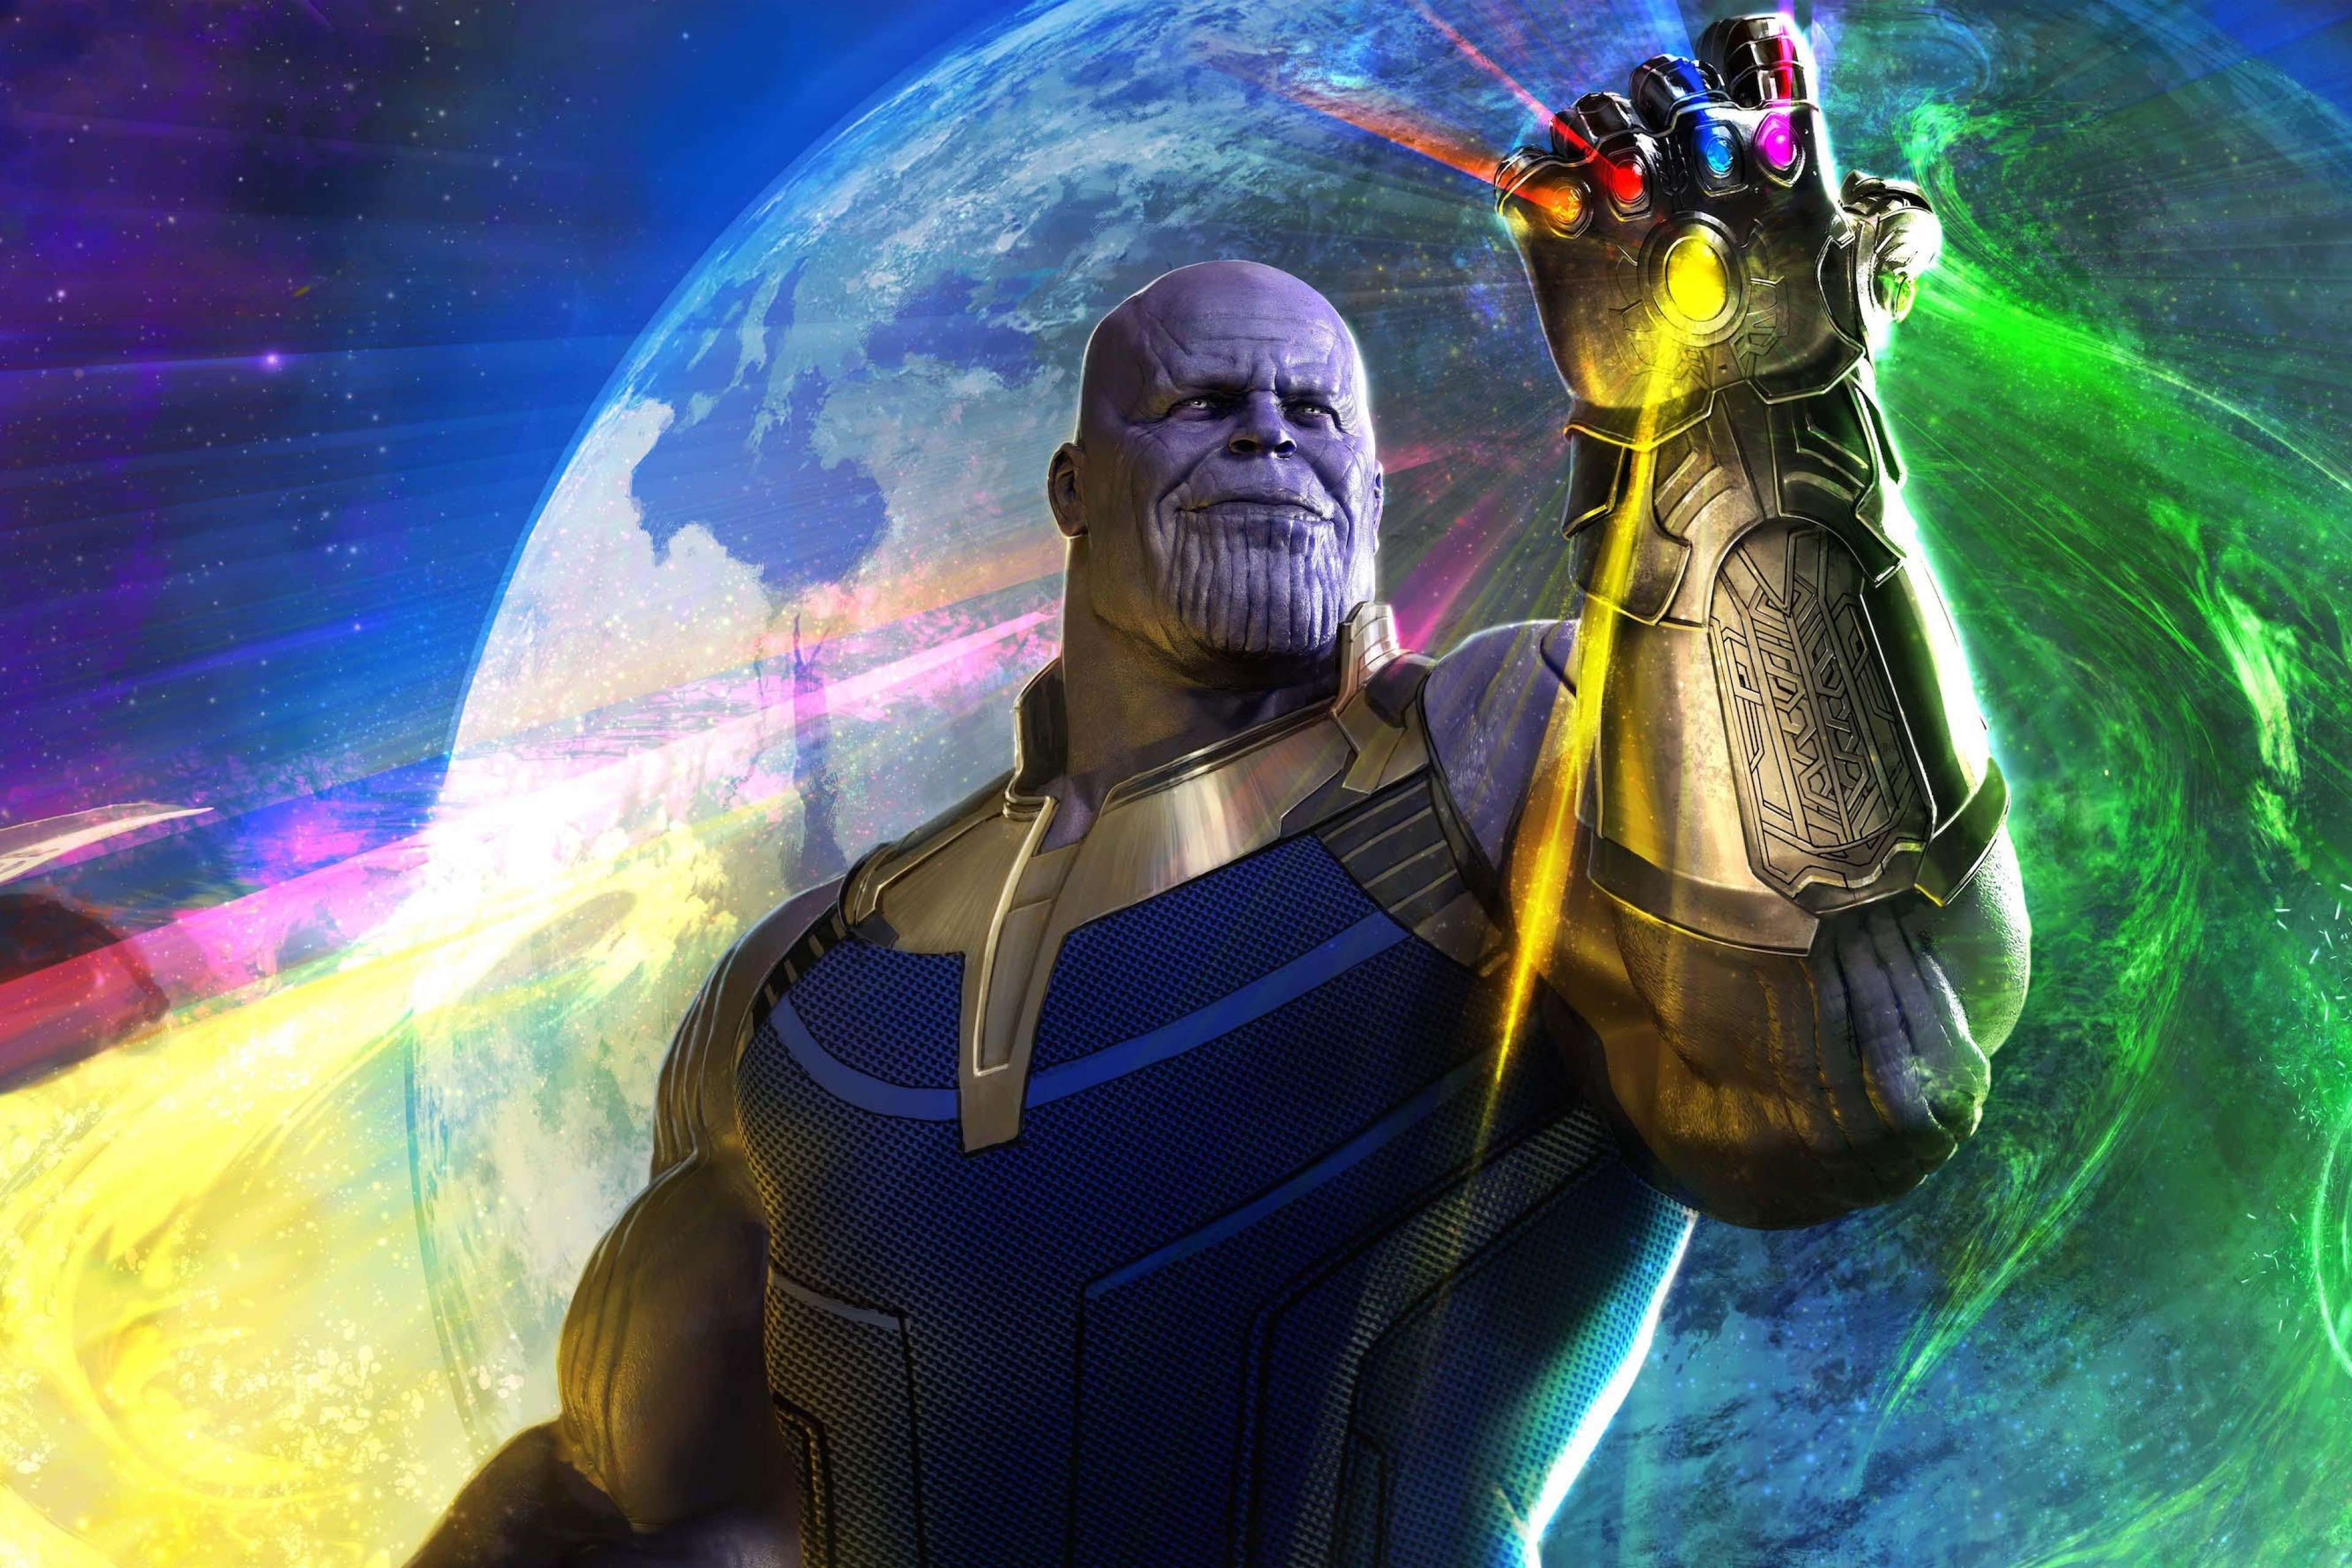 Avengers Infinity War Dual Monitor Wallpaper Posted By Ethan Peltier